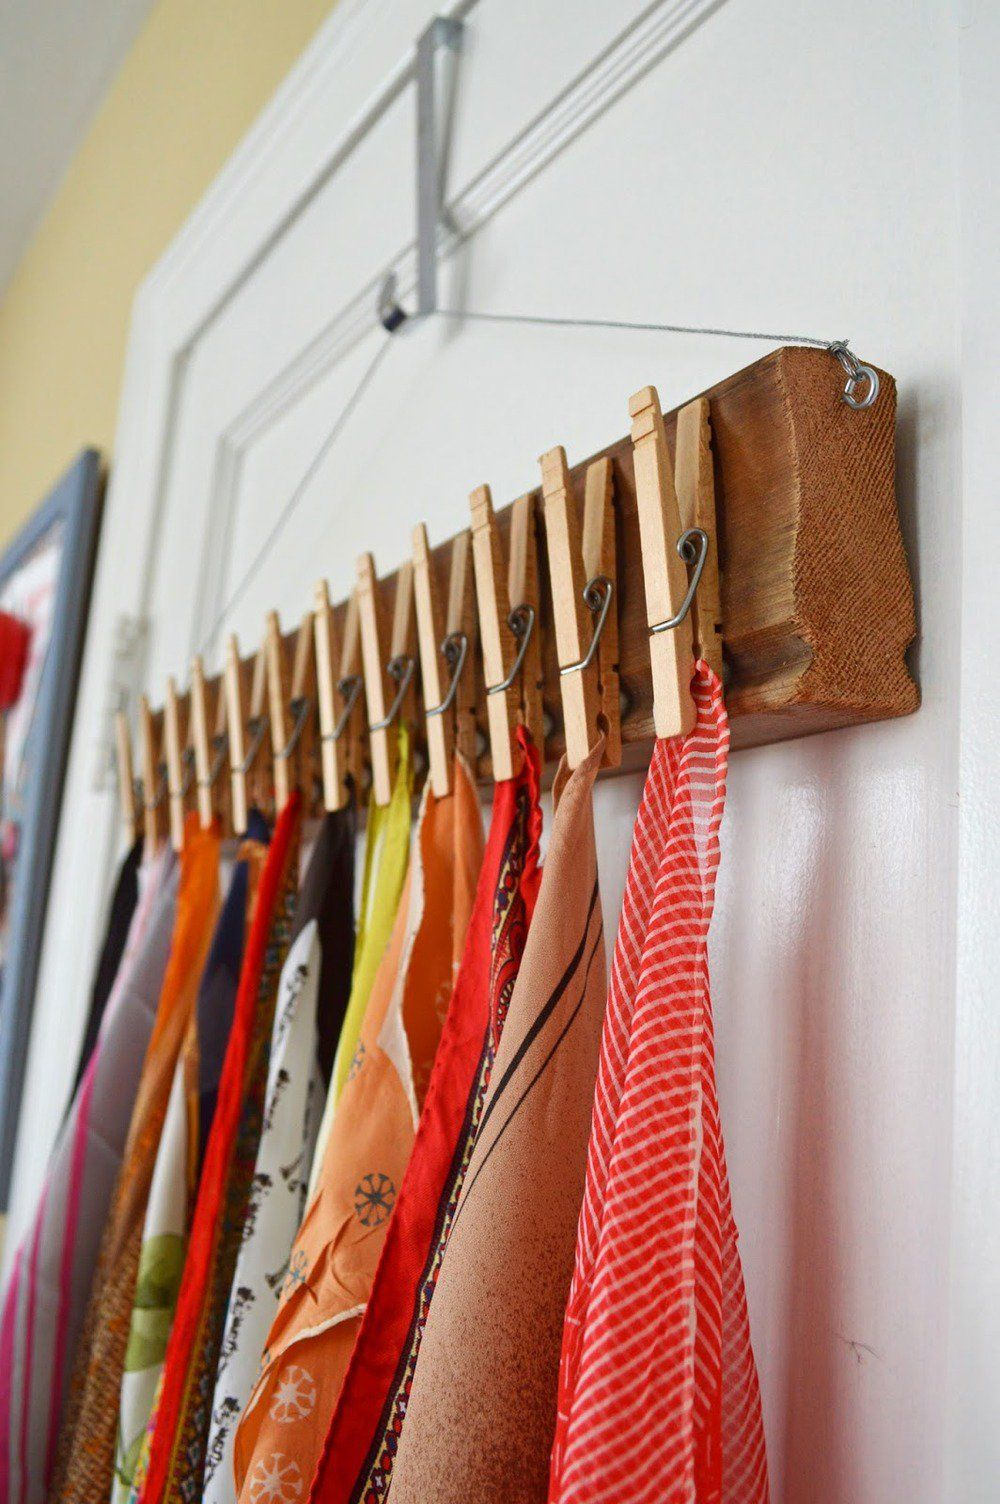 Wall Hangers For Clothes 11 Diy Ways To Contain Your Clutter Without Compromising Your Style